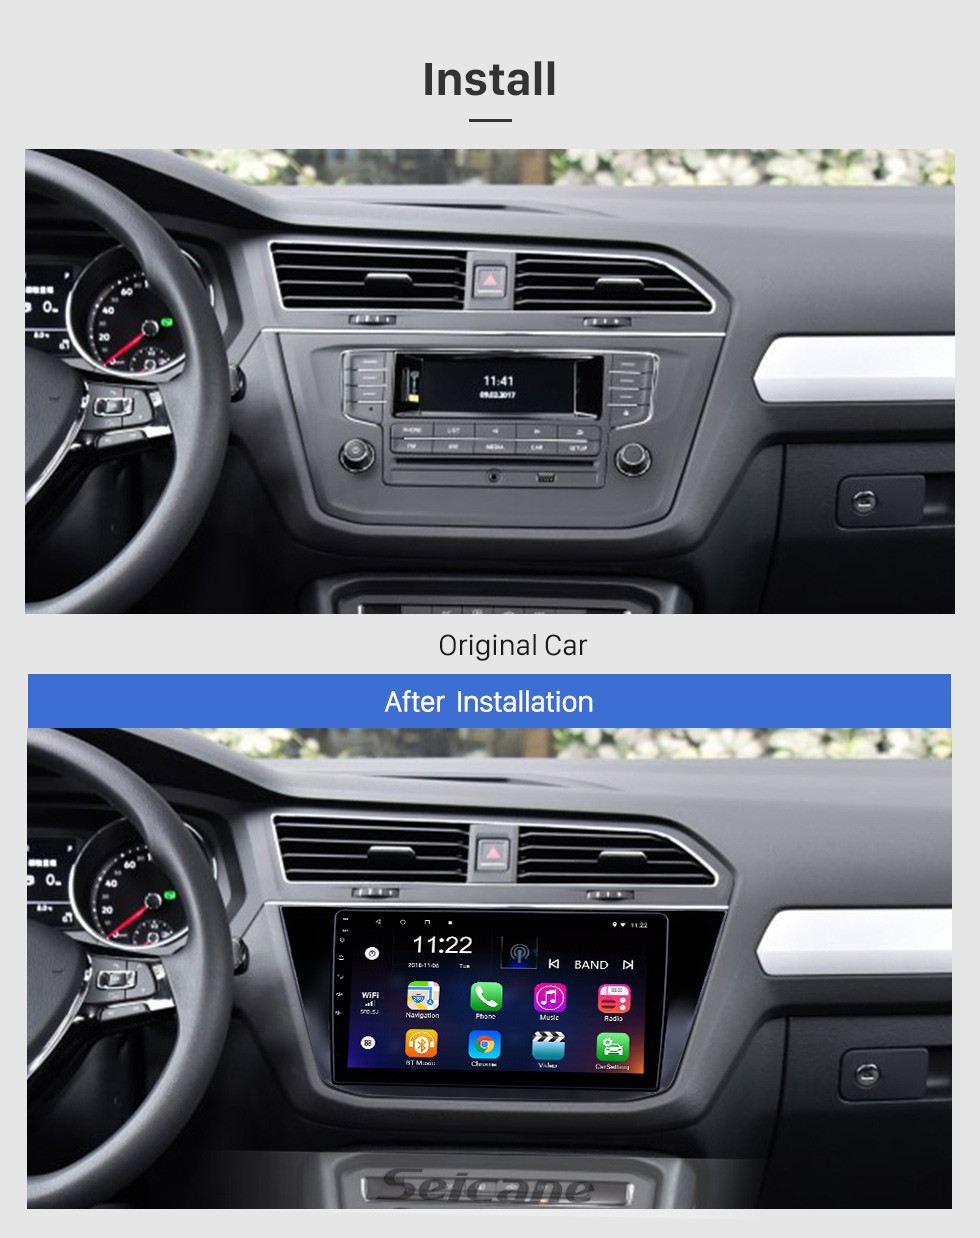 Seicane 10.1 inch Android 10.0 GPS Navigation Radio for 2016-2018 VW Volkswagen Tiguan with HD Touchscreen Bluetooth USB support Carplay TPMS